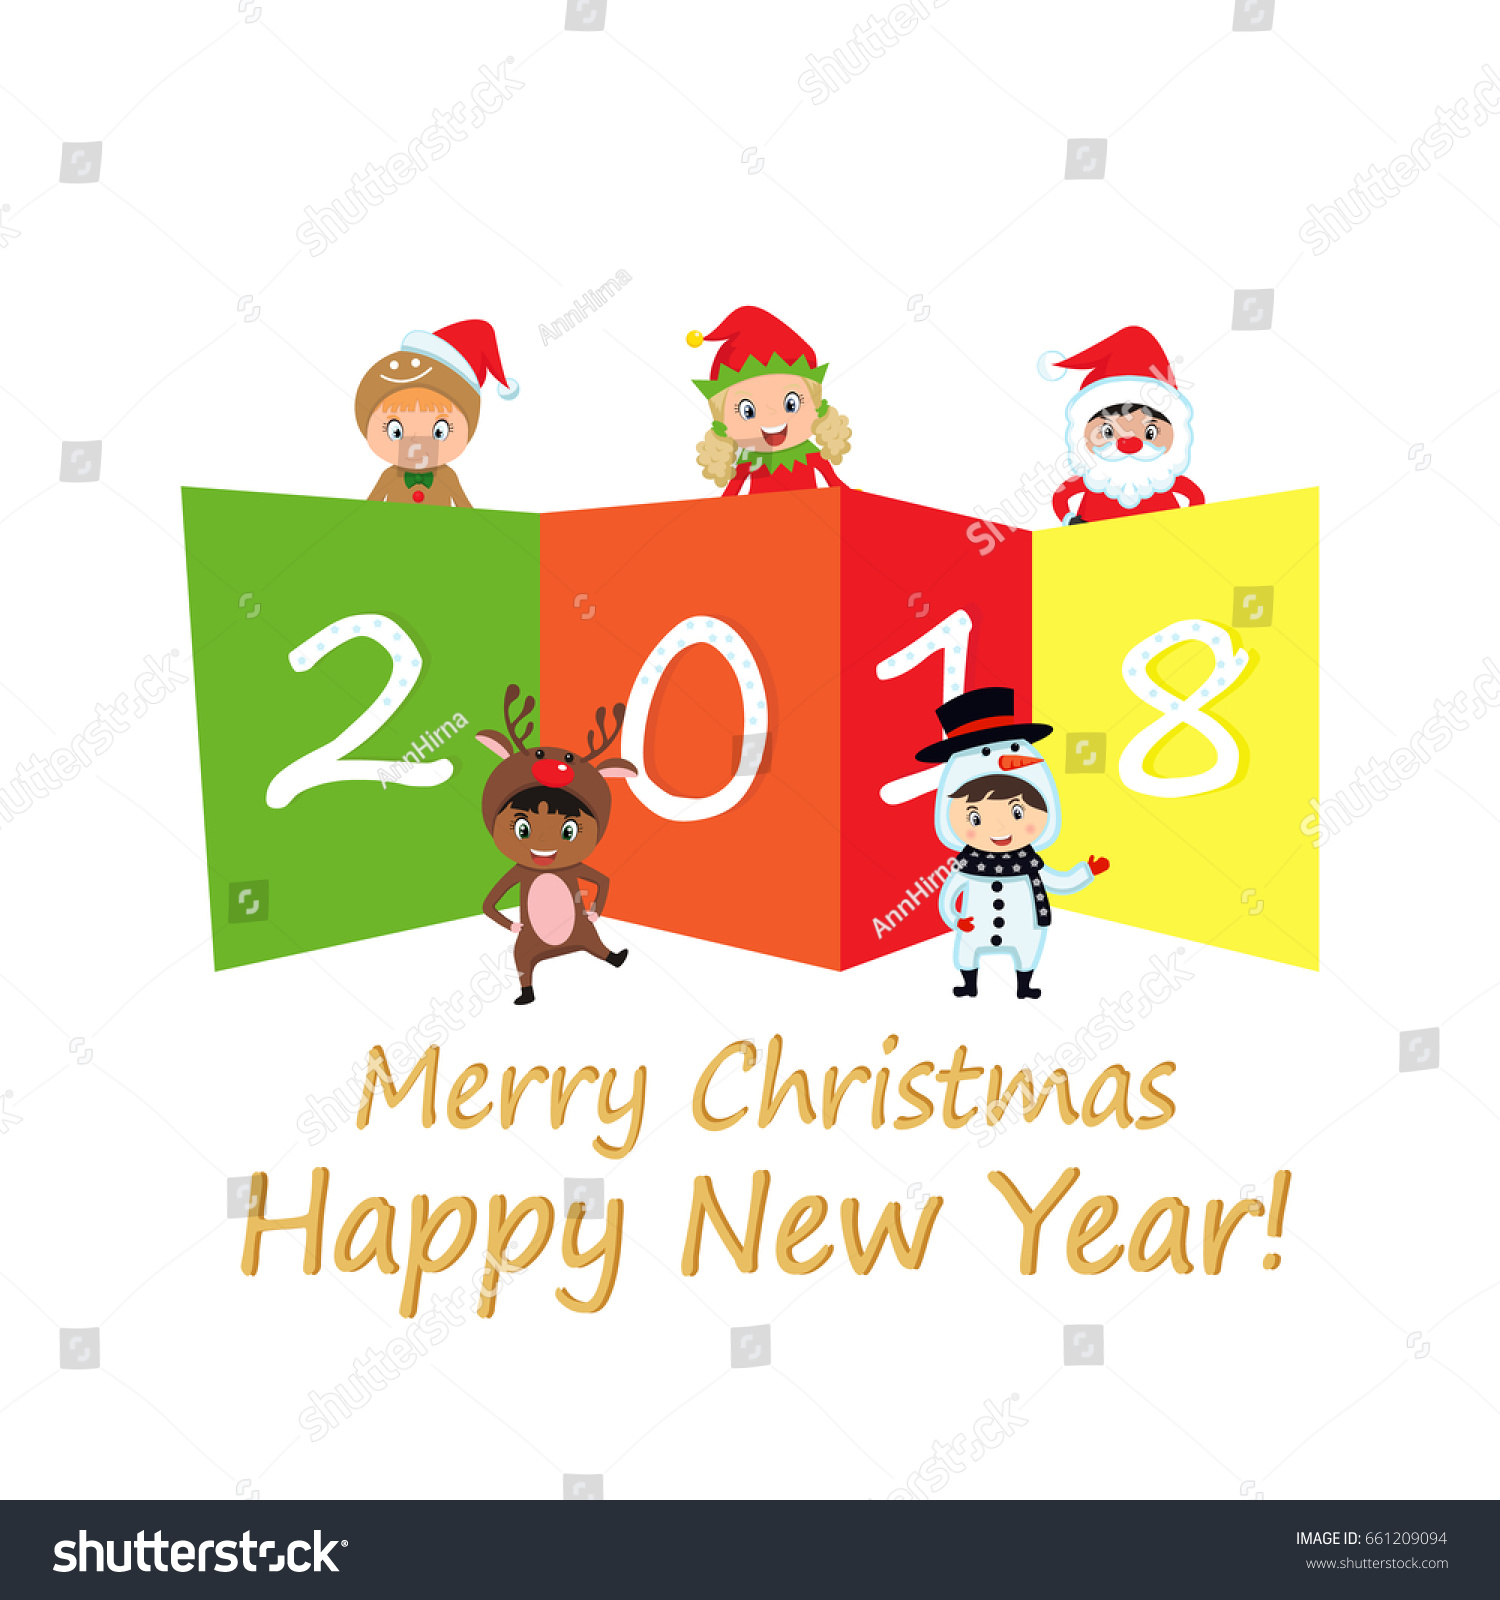 2018 happy new year greeting card stock vector 661209094